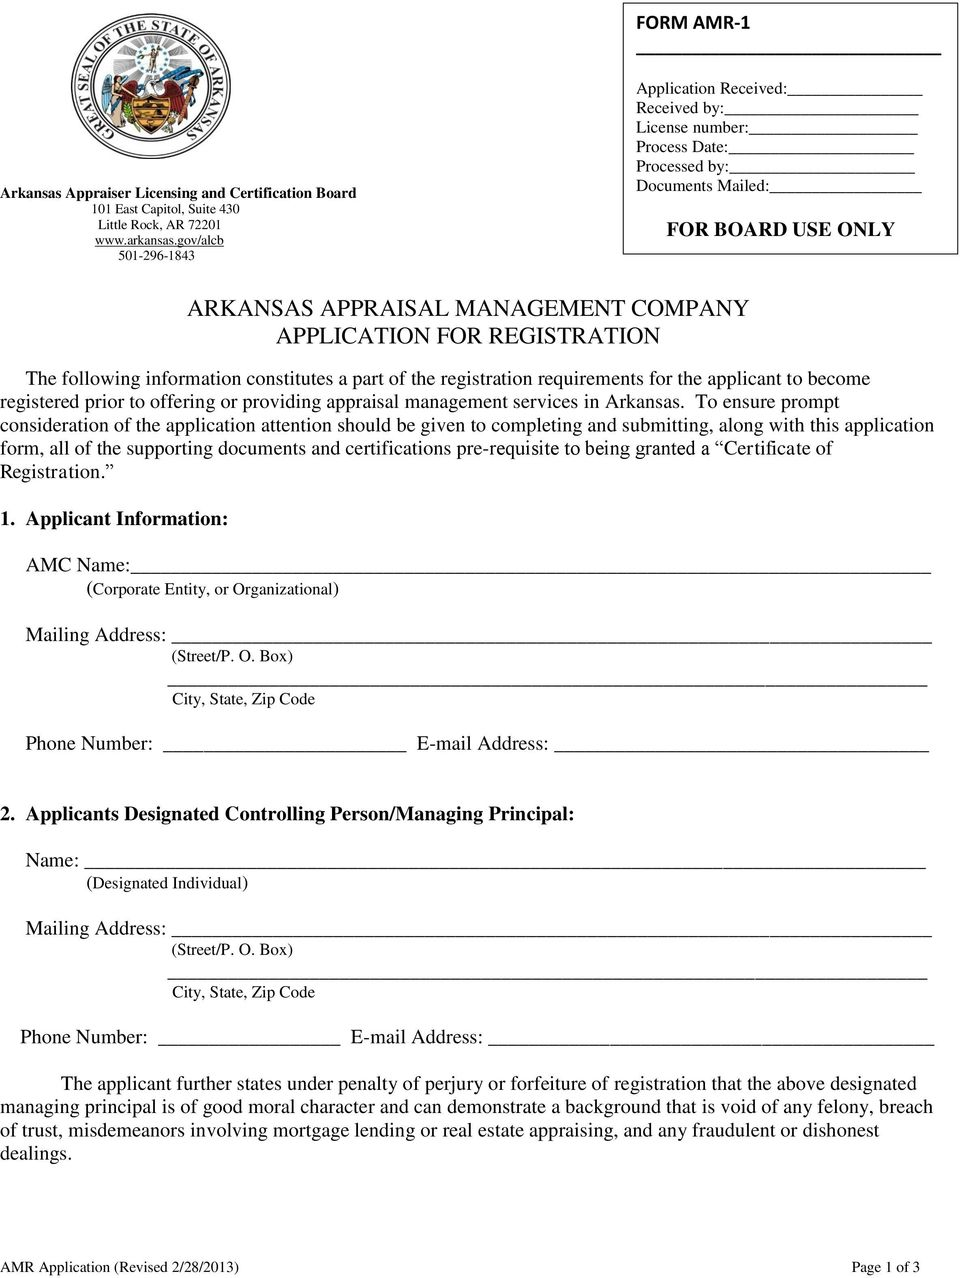 To ensure prompt consideration of the application attention should be given to completing and submitting, along with this application form, all of the supporting documents and certifications